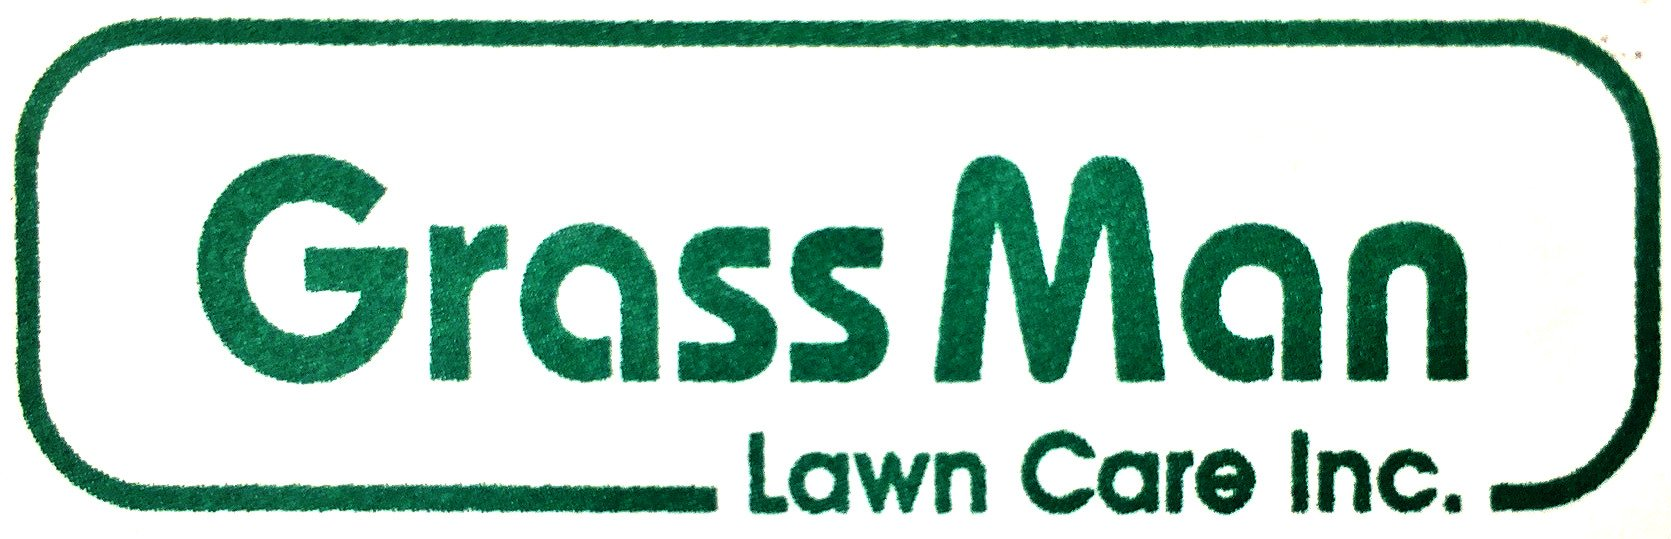 GrassMan Lawn Care Inc. Waterloo IL logo